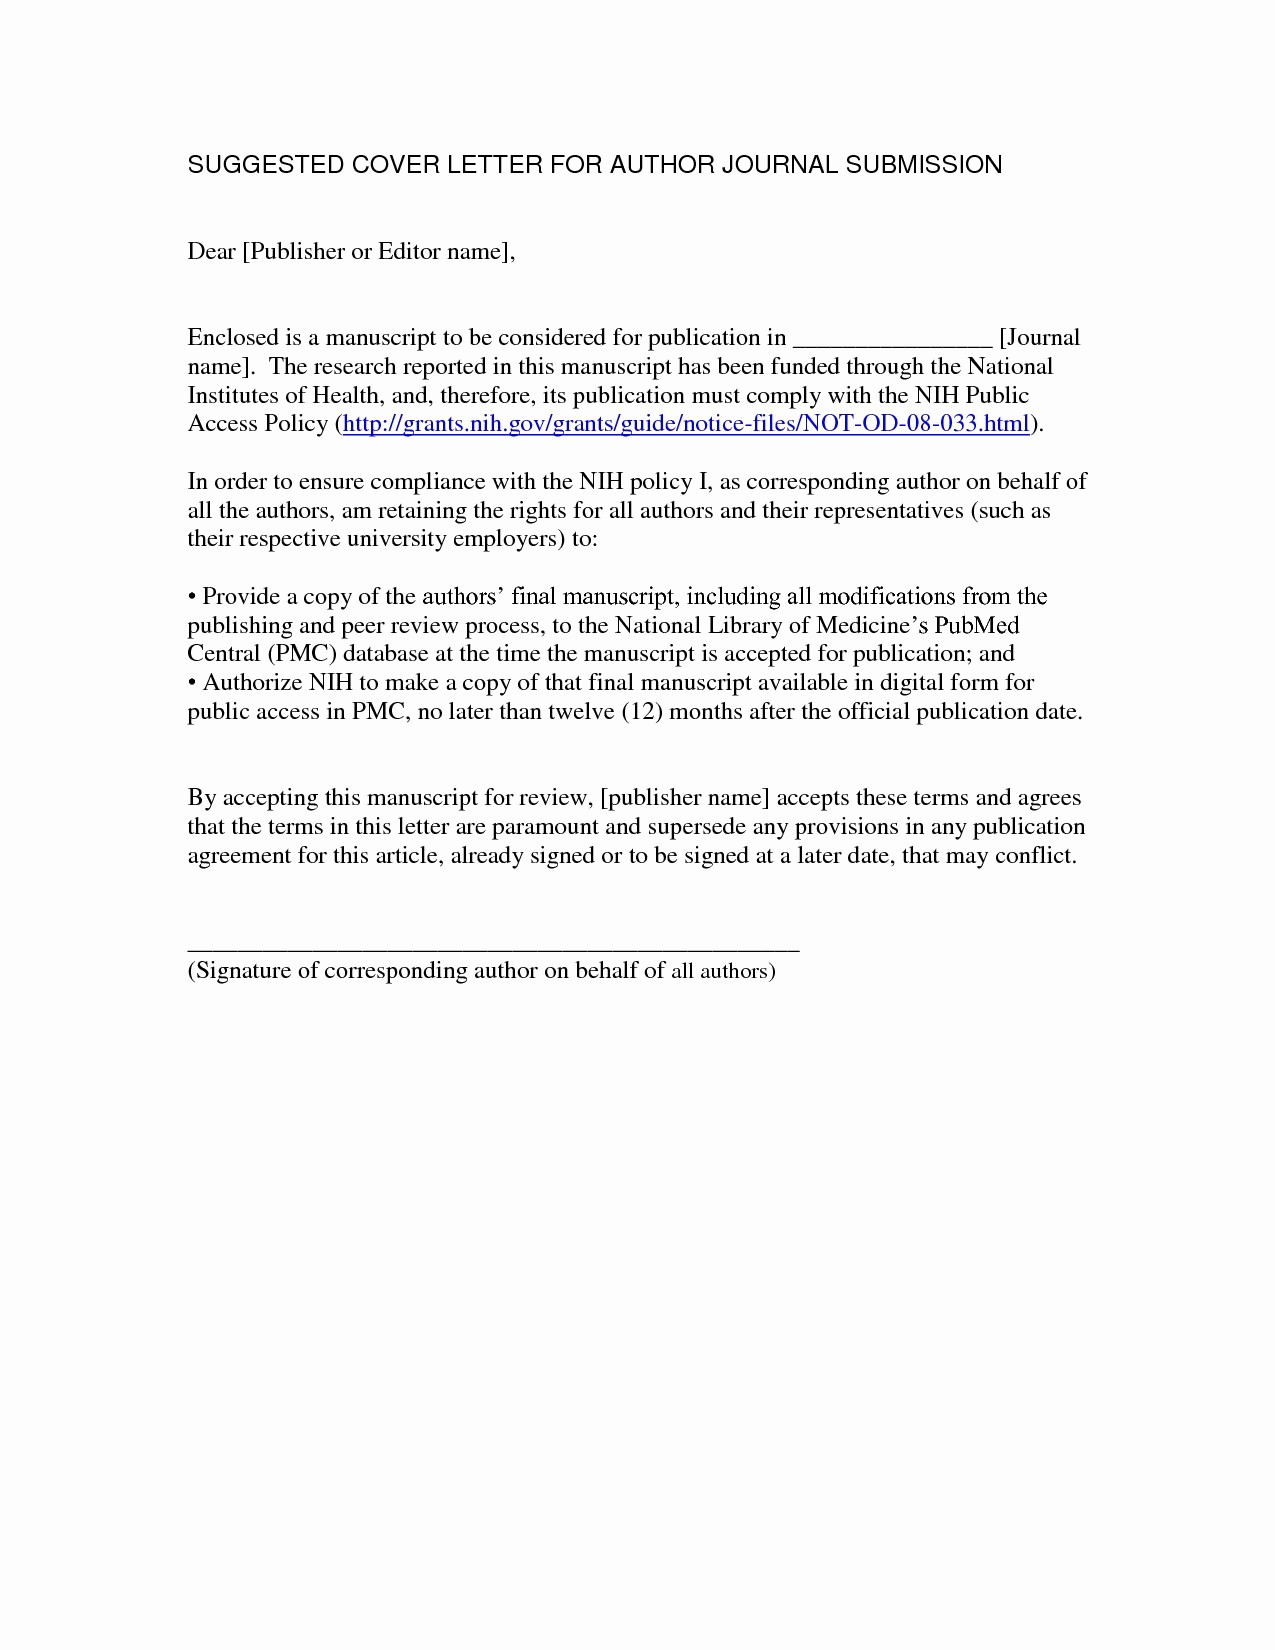 Contract Termination Letter Template - Awesome Contract Termination Letter